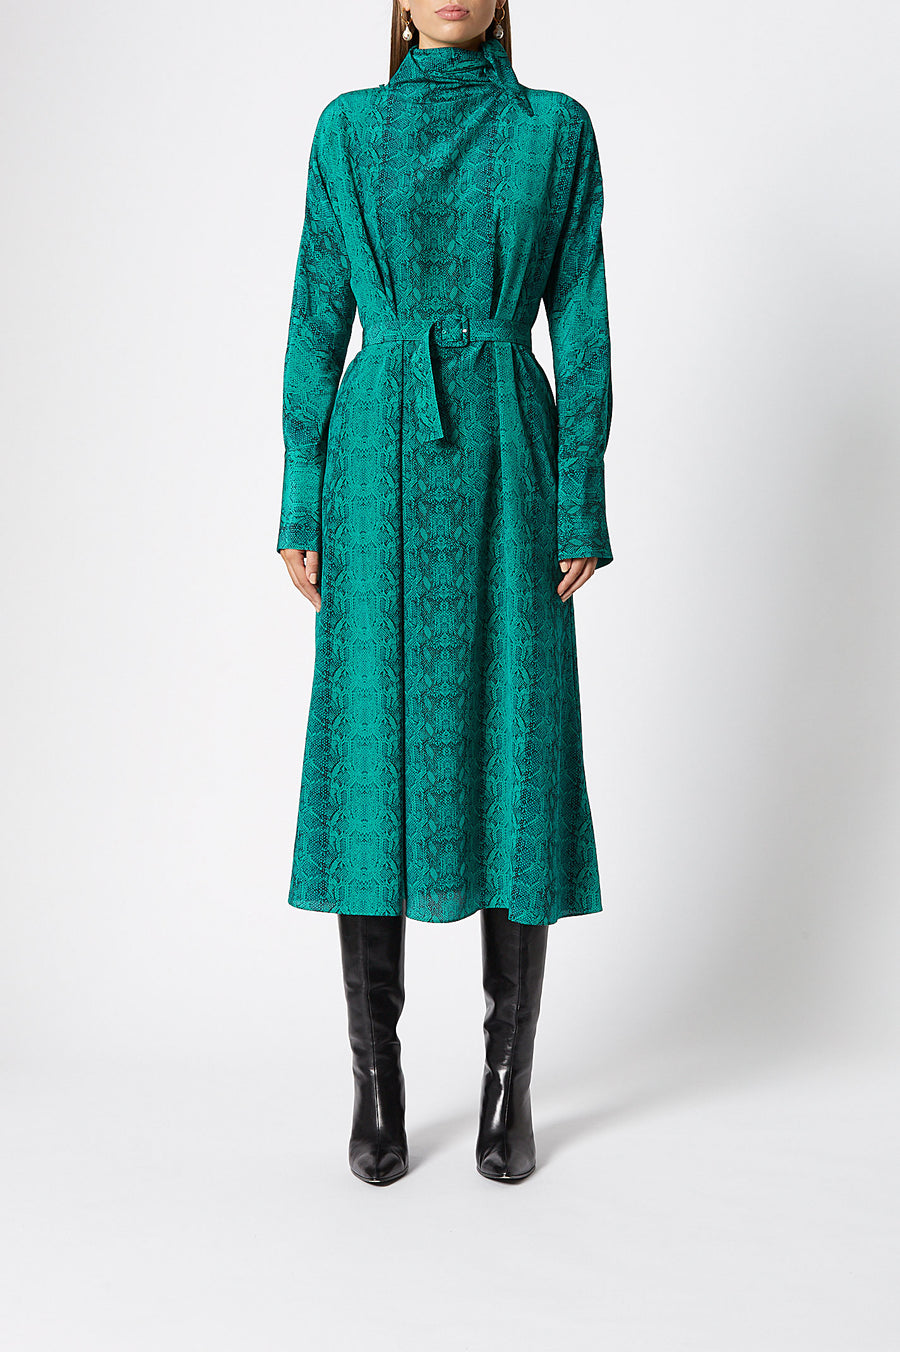 CDC Cravat Dress, tie neck, long sleeves, cinches in at waist, falls just below knees, 100% silk, color emerald